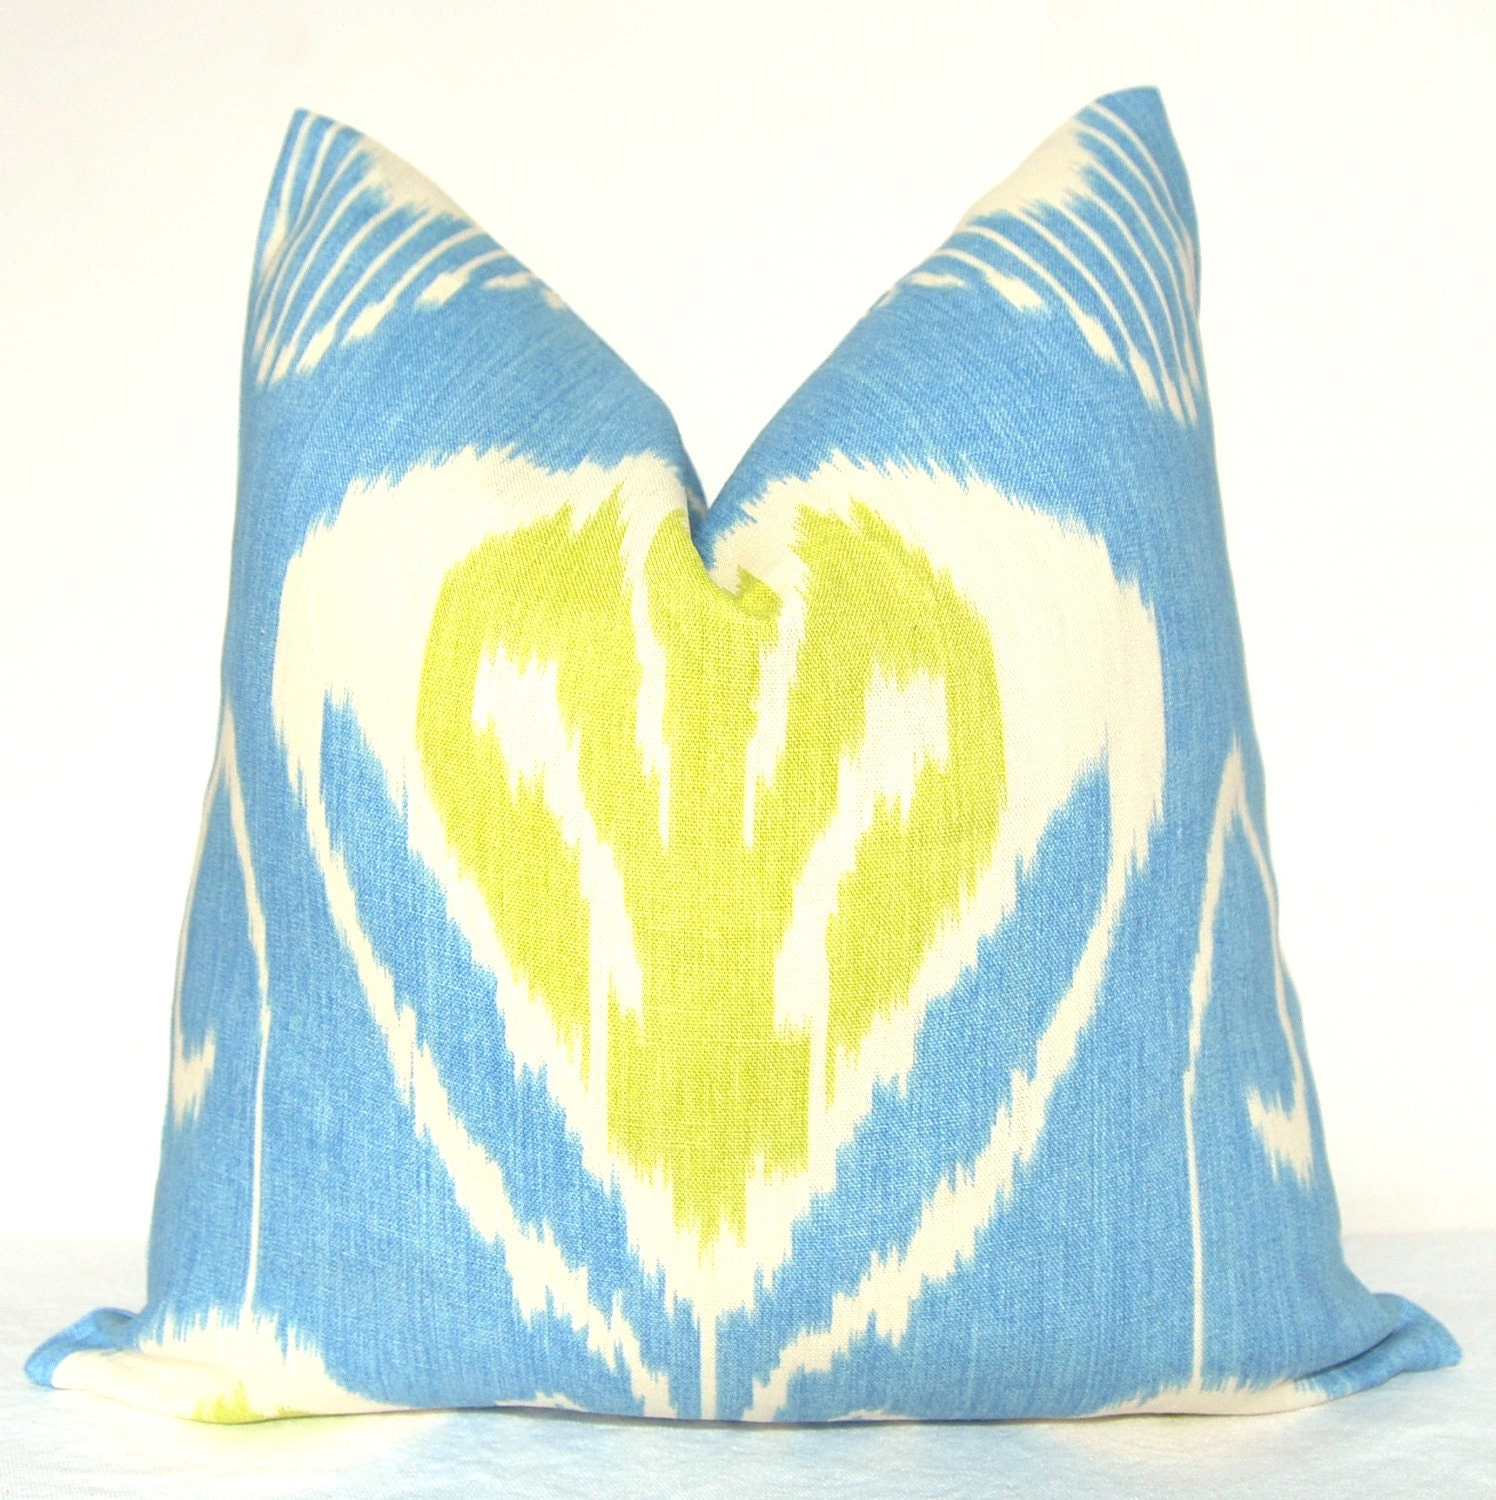 Handmade Ikat Throw Pillows : Kravet Ikat Pillow Handmade in USA Pillow Cover Decorative